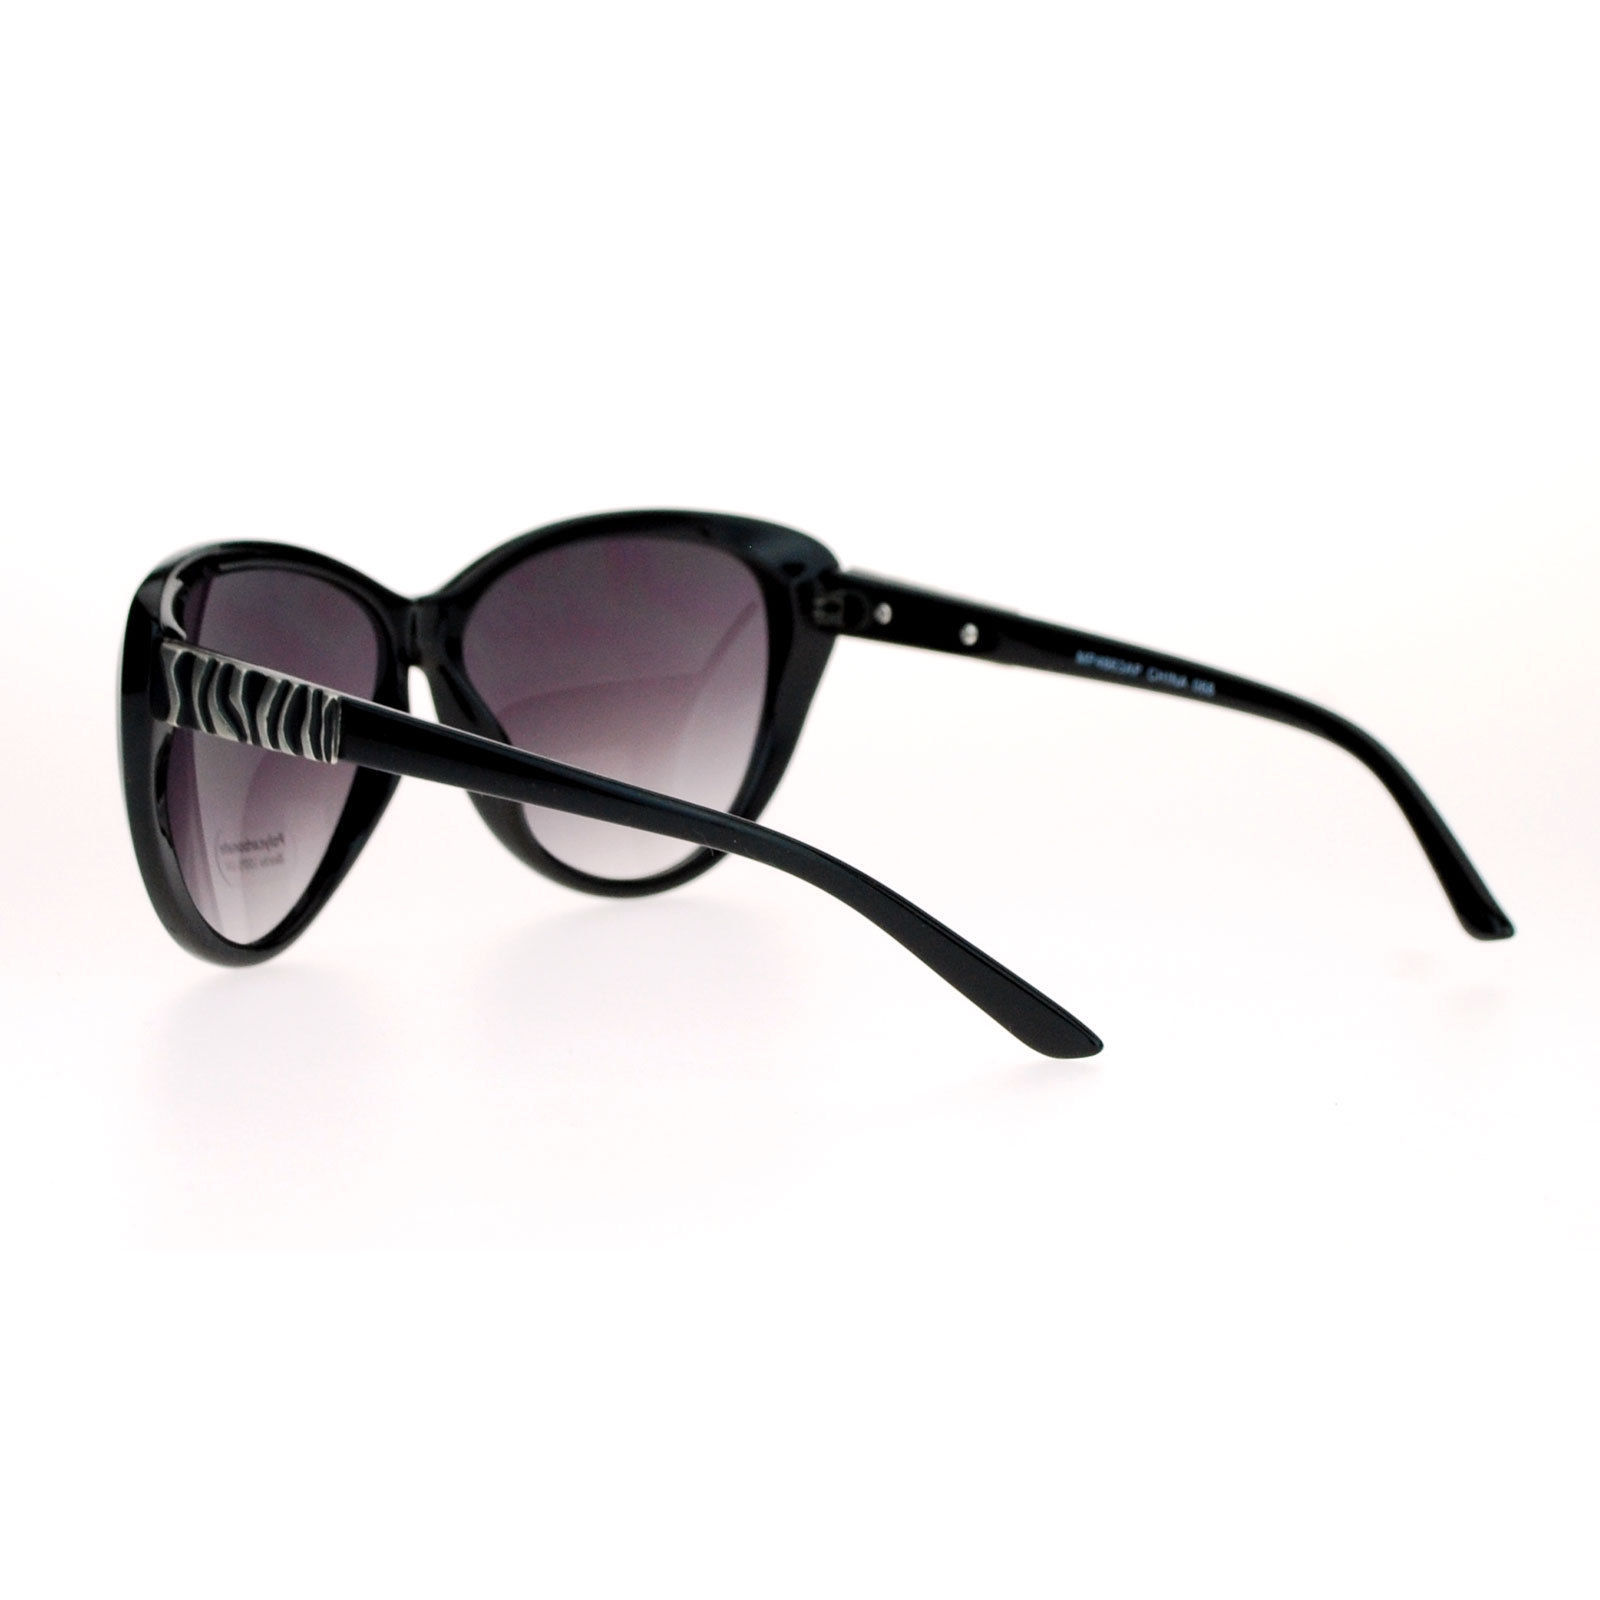 Womens Oversized Cateye Sunglasses Designer Fashion Eyewear UV Protection